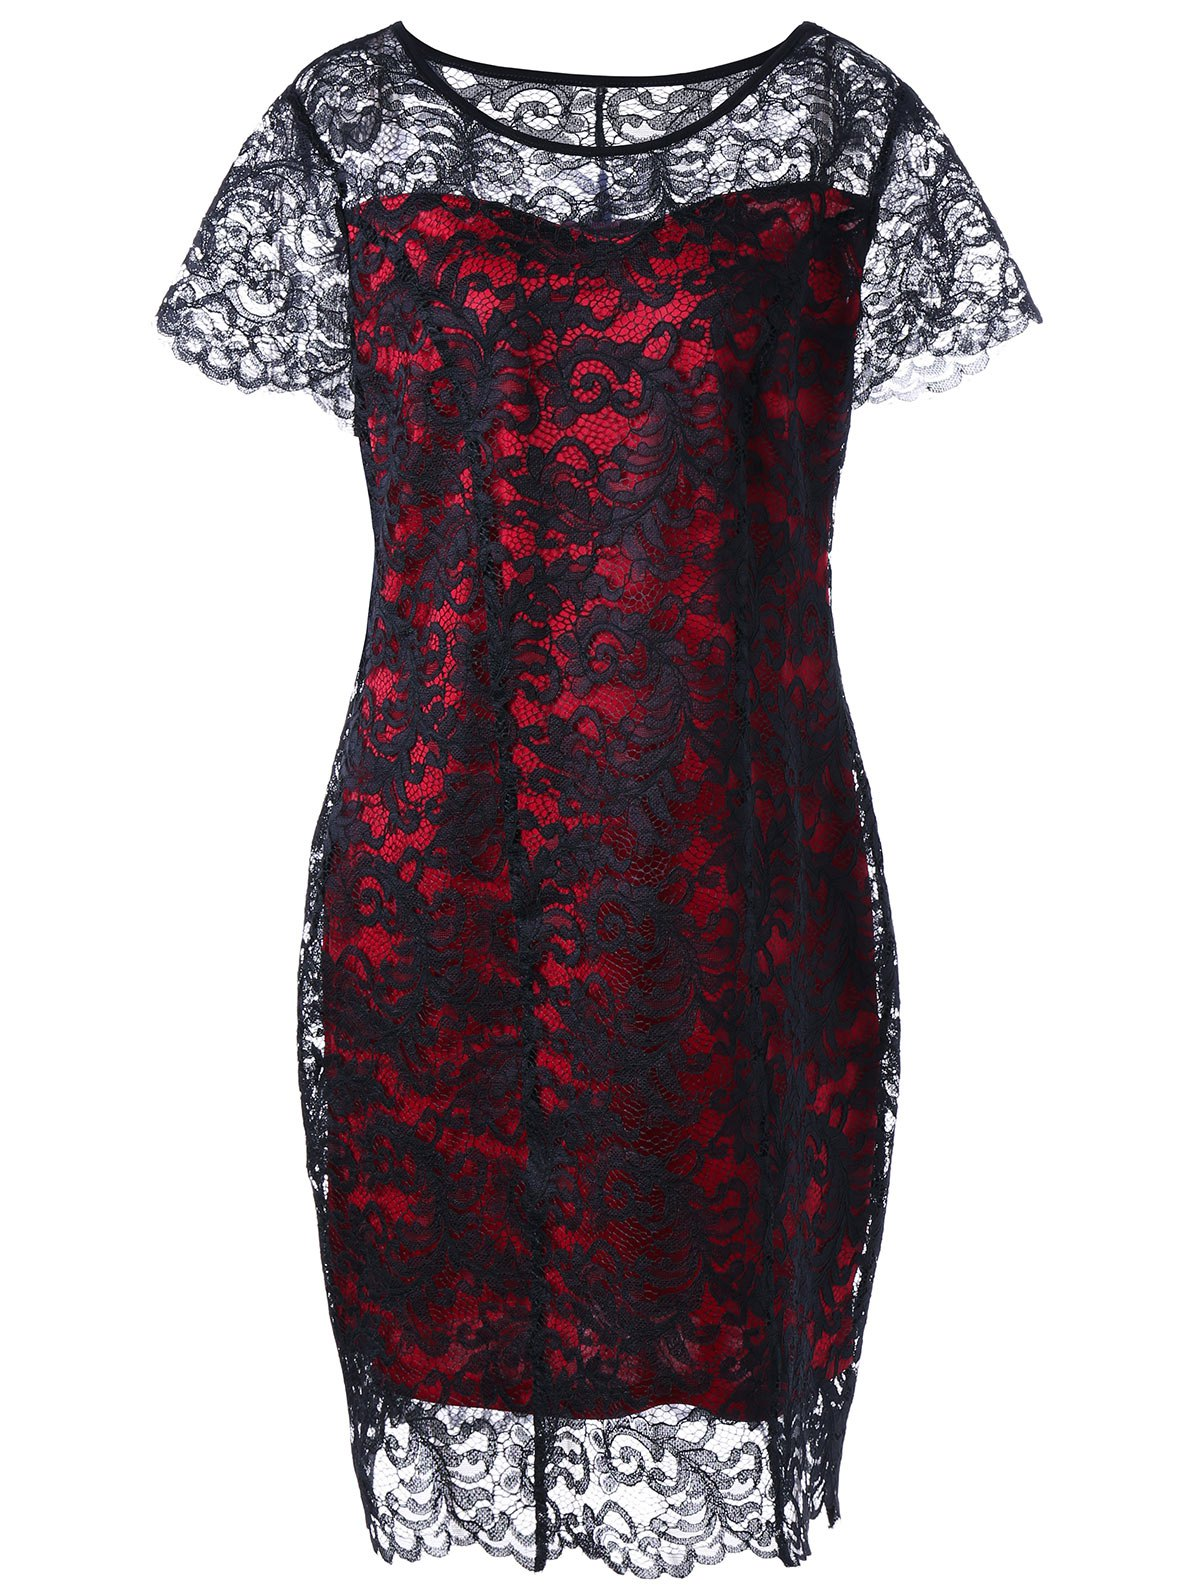 Plus Size Sheath Fitted Lace DressWOMEN<br><br>Size: 4XL; Color: RED WITH BLACK; Style: Brief; Material: Polyester; Silhouette: Sheath; Dresses Length: Knee-Length; Neckline: Round Collar; Sleeve Length: Short Sleeves; Embellishment: Lace; Pattern Type: Others; With Belt: No; Season: Fall,Spring,Summer; Weight: 0.3500kg; Package Contents: 1 x Dress;